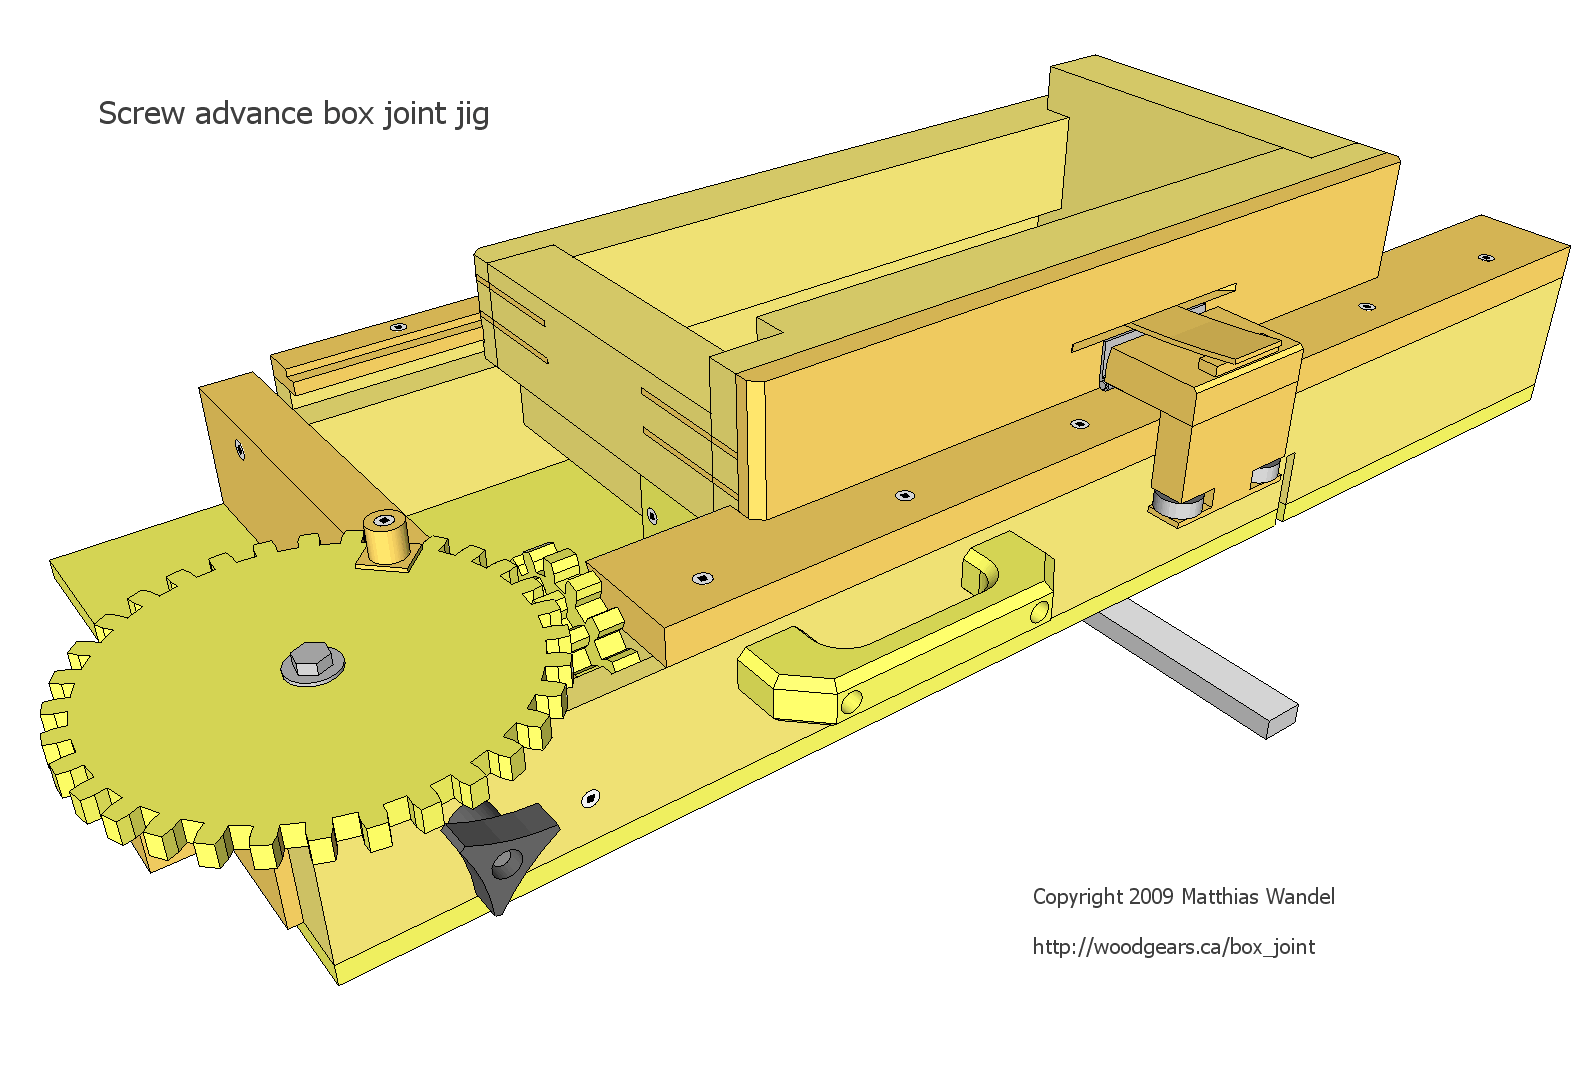 Screw advance box joint jig plans greentooth Image collections